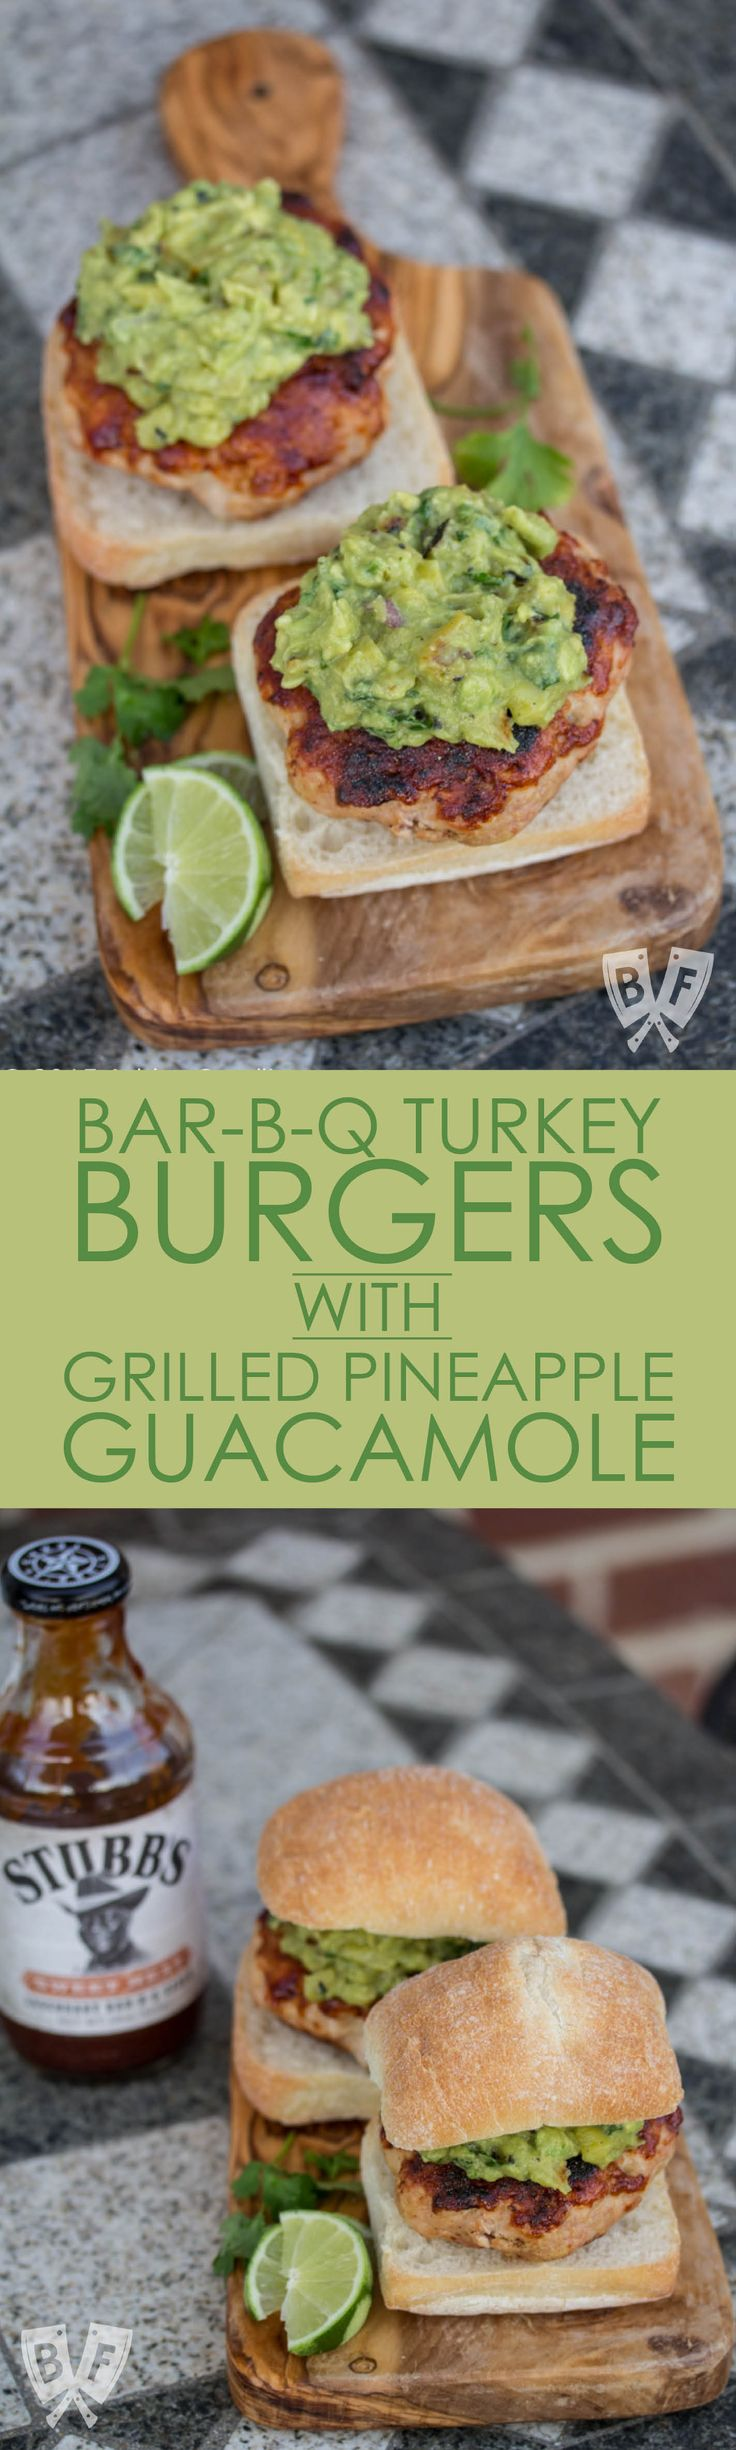 Bar-B-Q Turkey Burgers with Grilled Pineapple Guacamole: Grilled pineapple-studded guacamole is piled on top of these turkey burgers that have been brushed with a sweet-and-spicy bar-b-q sauce. #ad